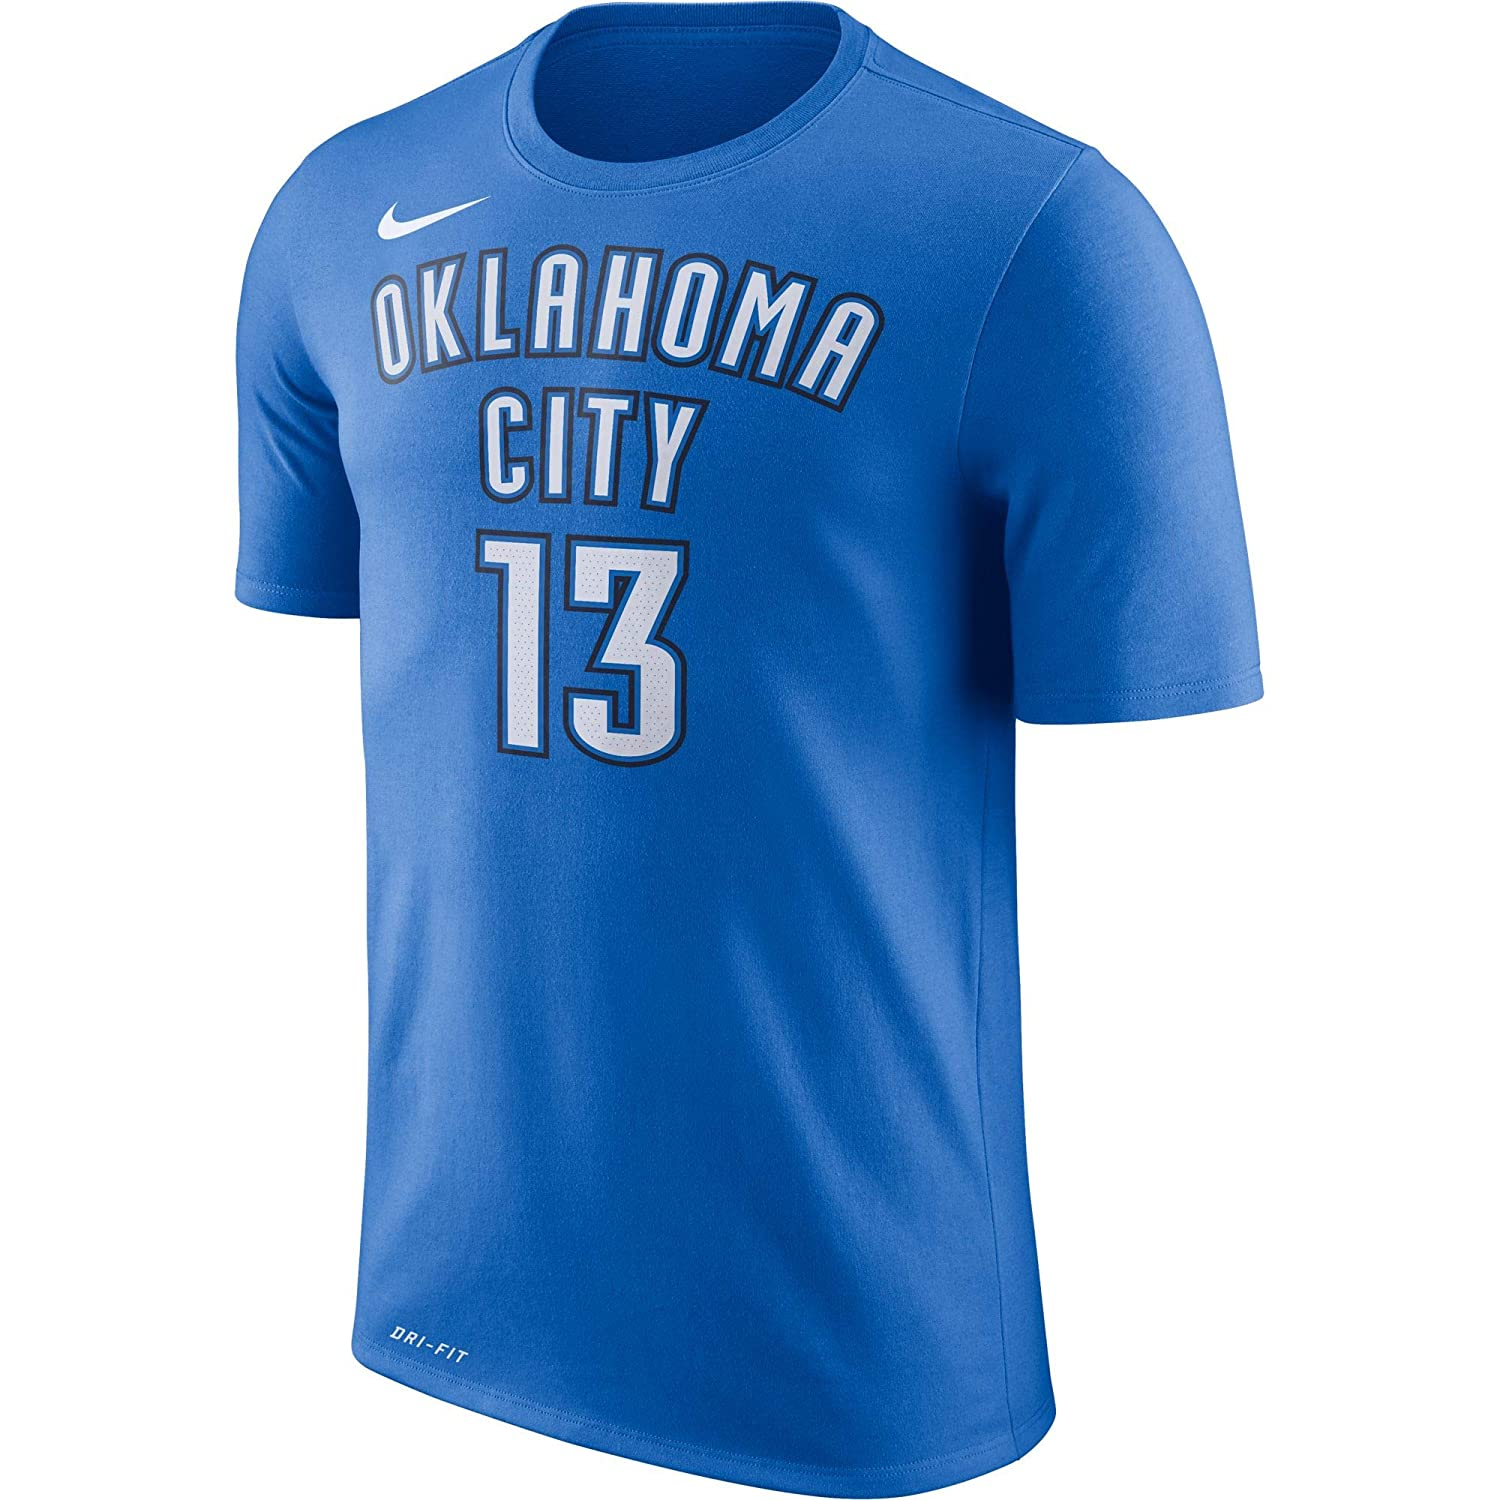 Nike Paul George Oklahoma City Thunder NBA Youth 8-20 Blue Dri-Fit Performance Official Player T-Shirt